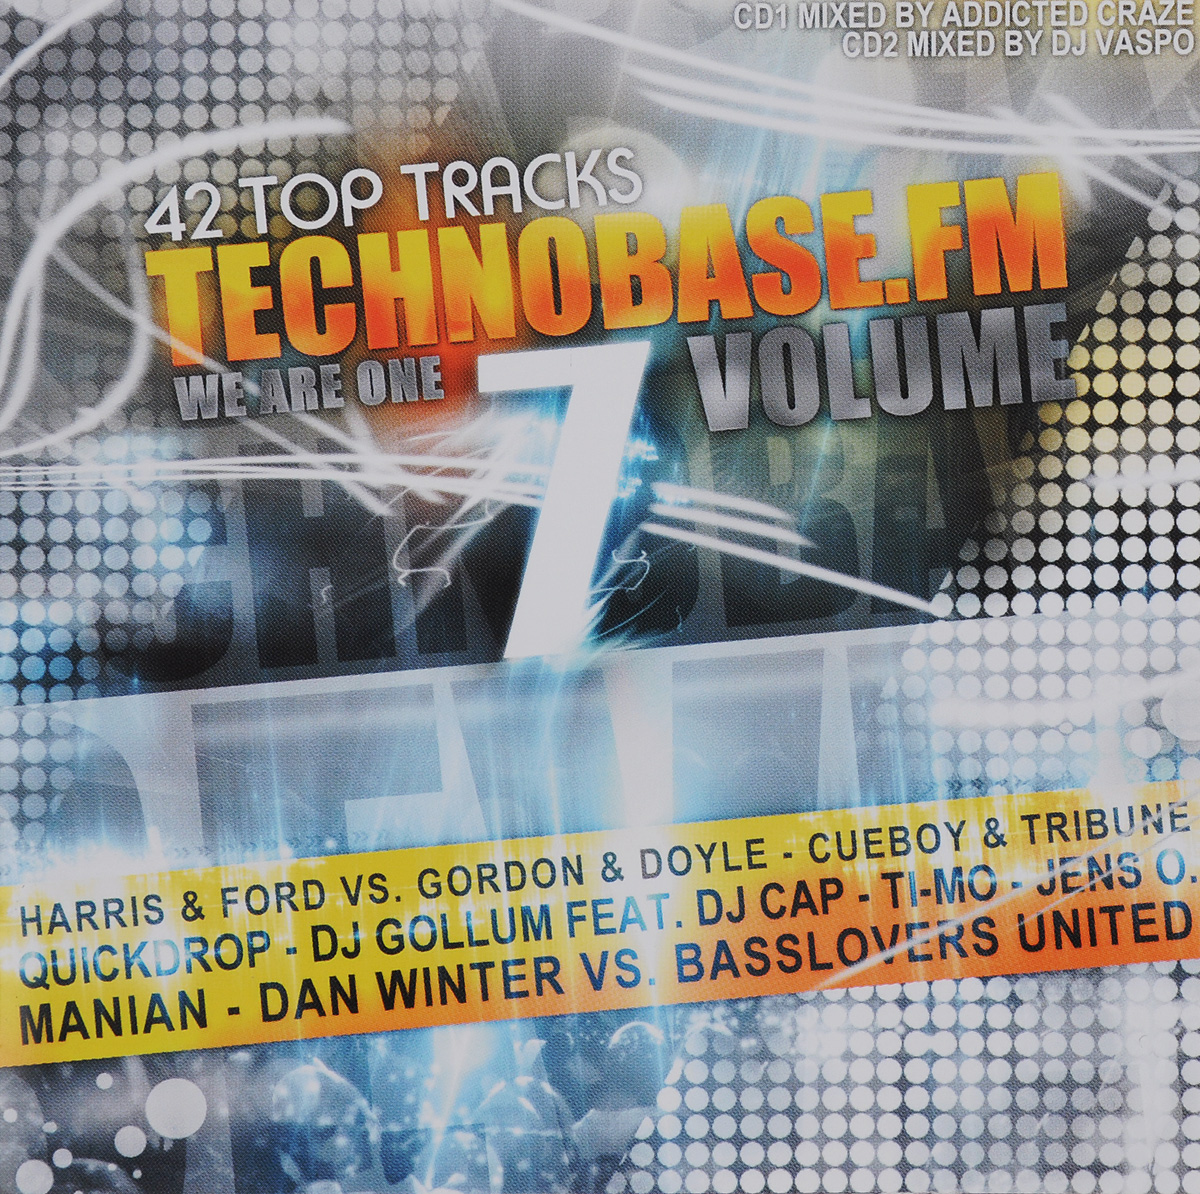 Addicted Craze,L.A.R.S,Cueboy,Tribune,Lolita Jolie,Dj Gollum,Dj Cap,Malu Project,James Stefano,Dj Analyzer Technobase.FM. We Are One. Volume 7 (2 CD) leather s dj amdition level 2 cd